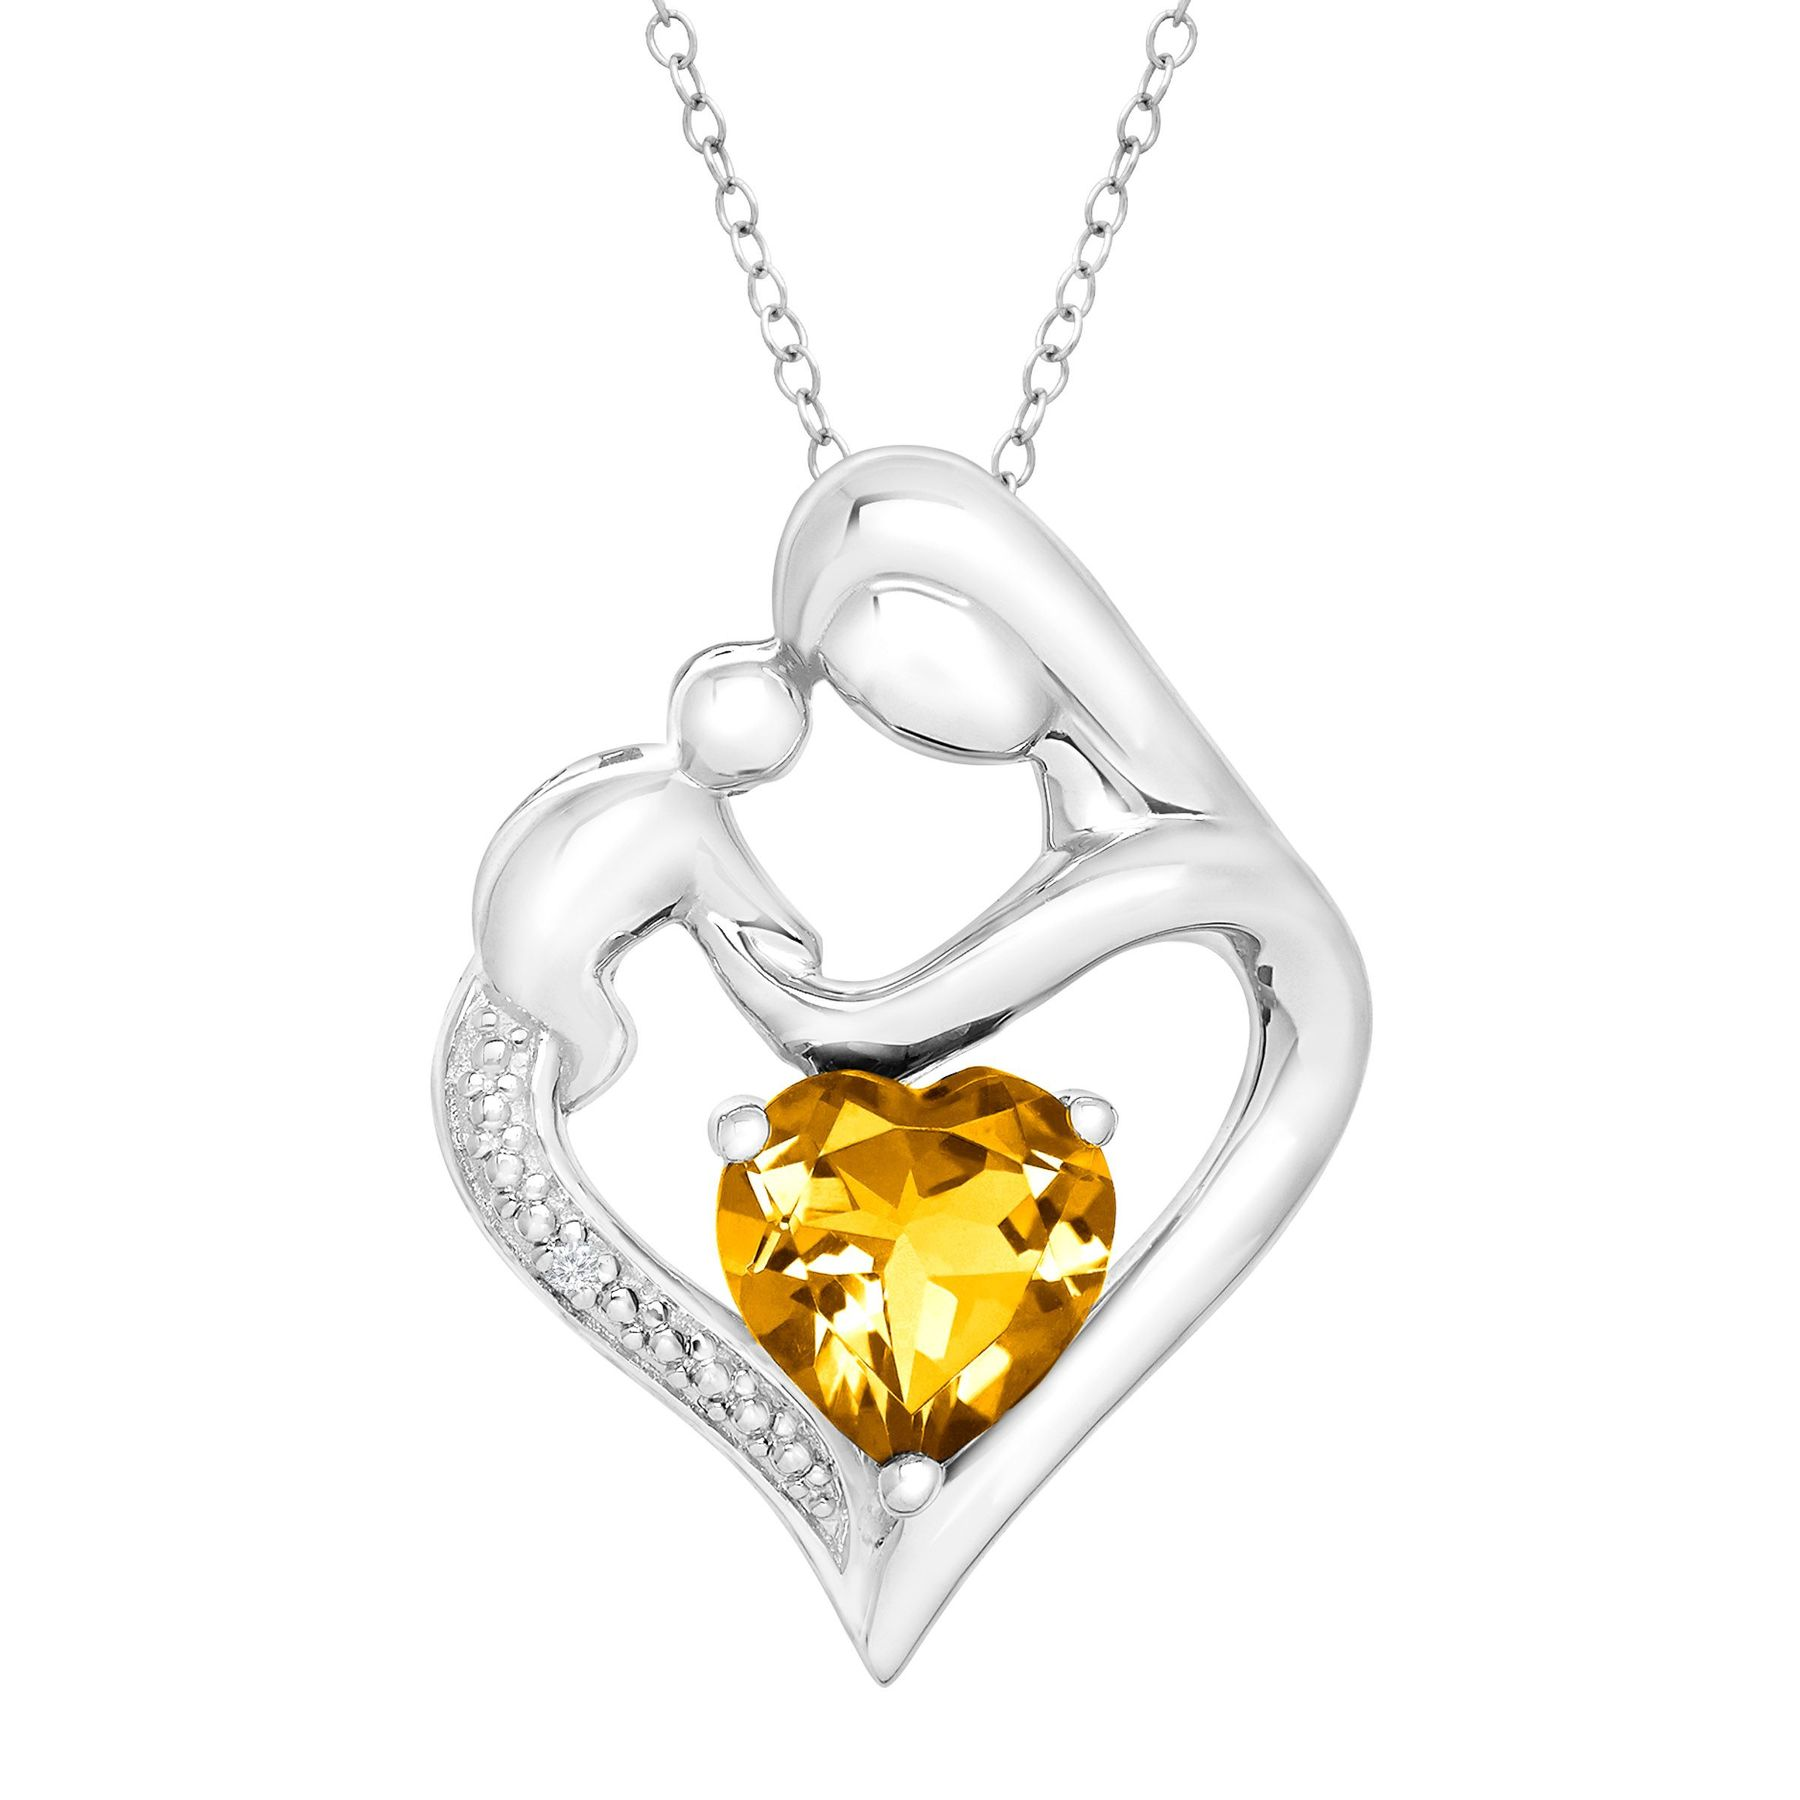 pendant silver sterling necklace and product tw mother in heart child diamond